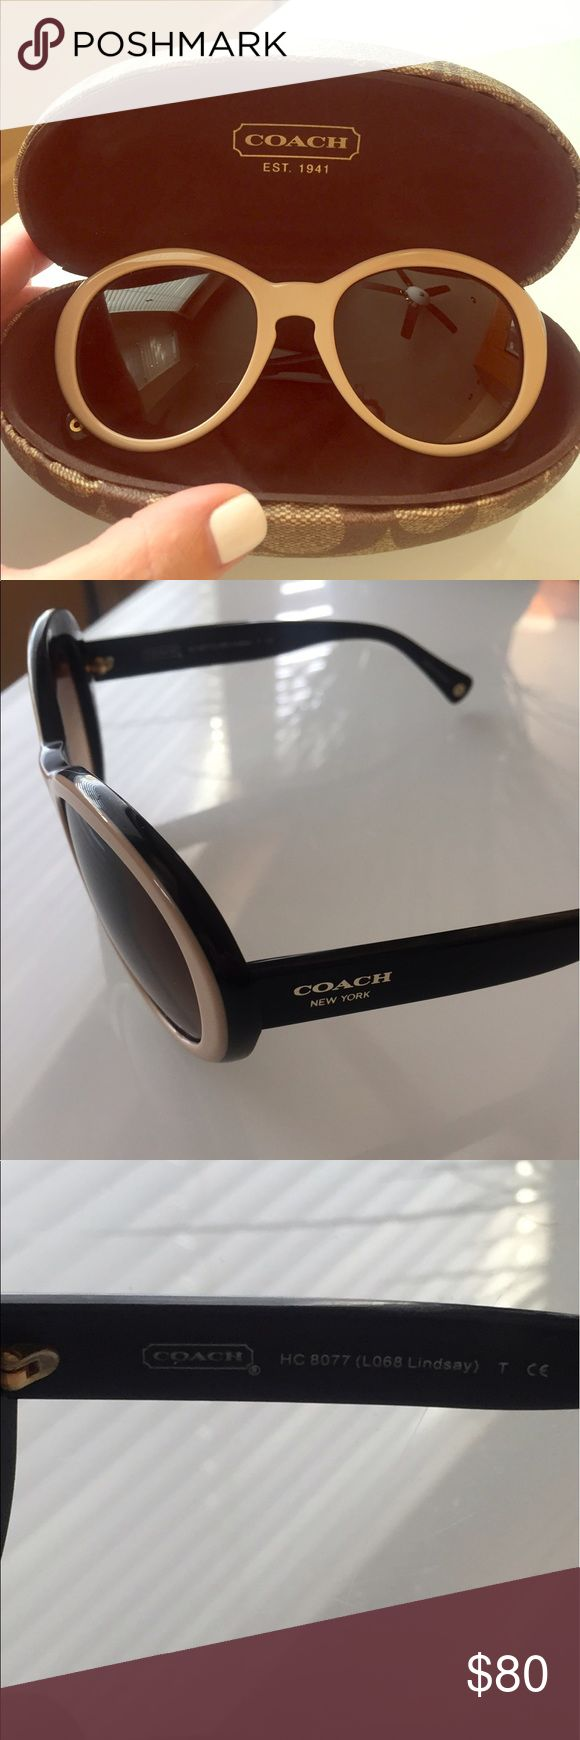 Coach sunnies! 😎 Authentic Coach sunnies purchased at the Coach store in San Diego. Excellent condition! Coach Accessories Sunglasses